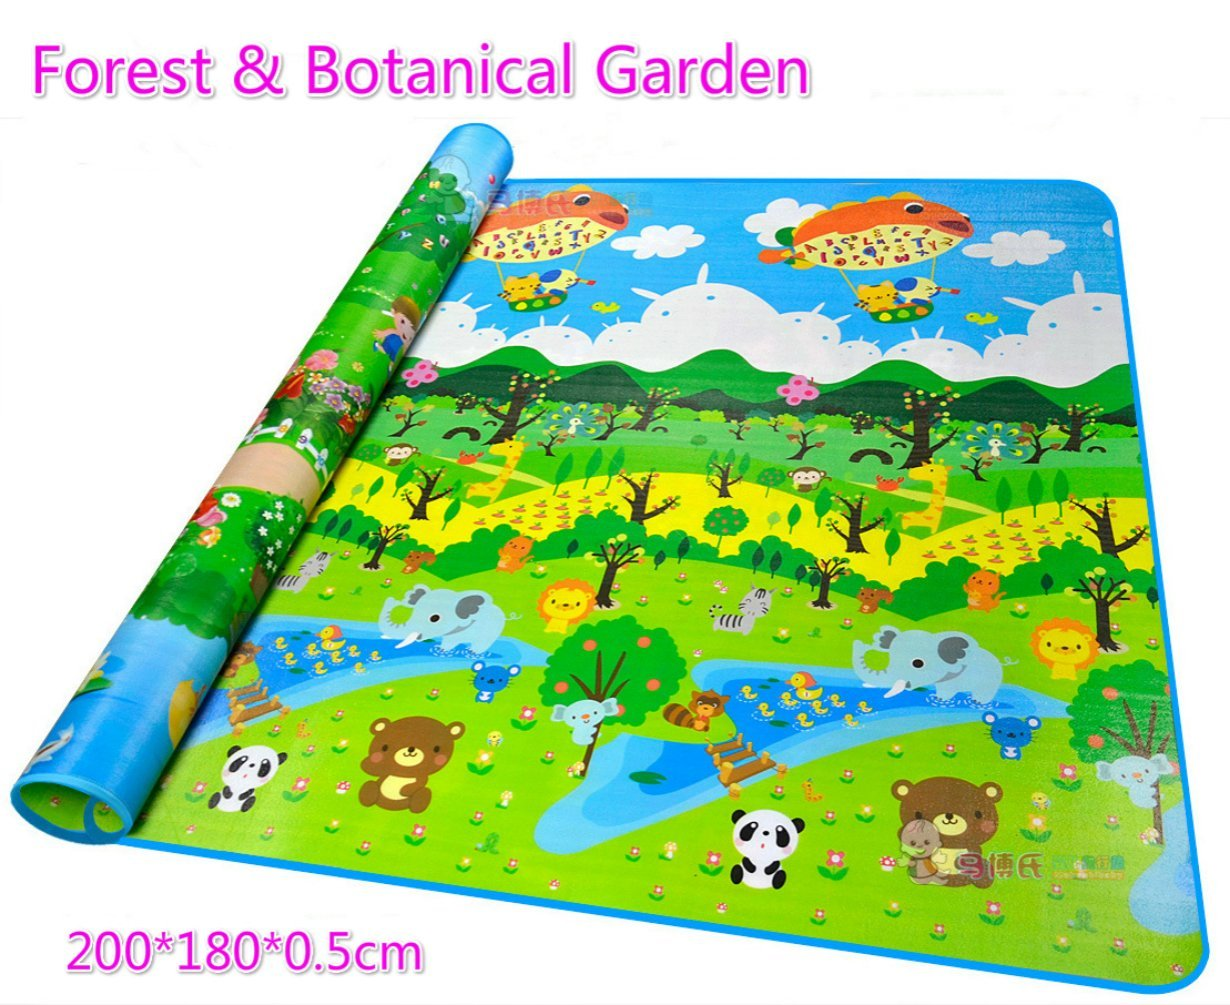 Sytian 2001800.5cm Large Size & Non-slip & Waterproof & Eco-friendly & Double Sides Baby Care Play Mat / Kids Crawling Mat / Playing Pad / Game Mat (Forest & Botanical Garden)